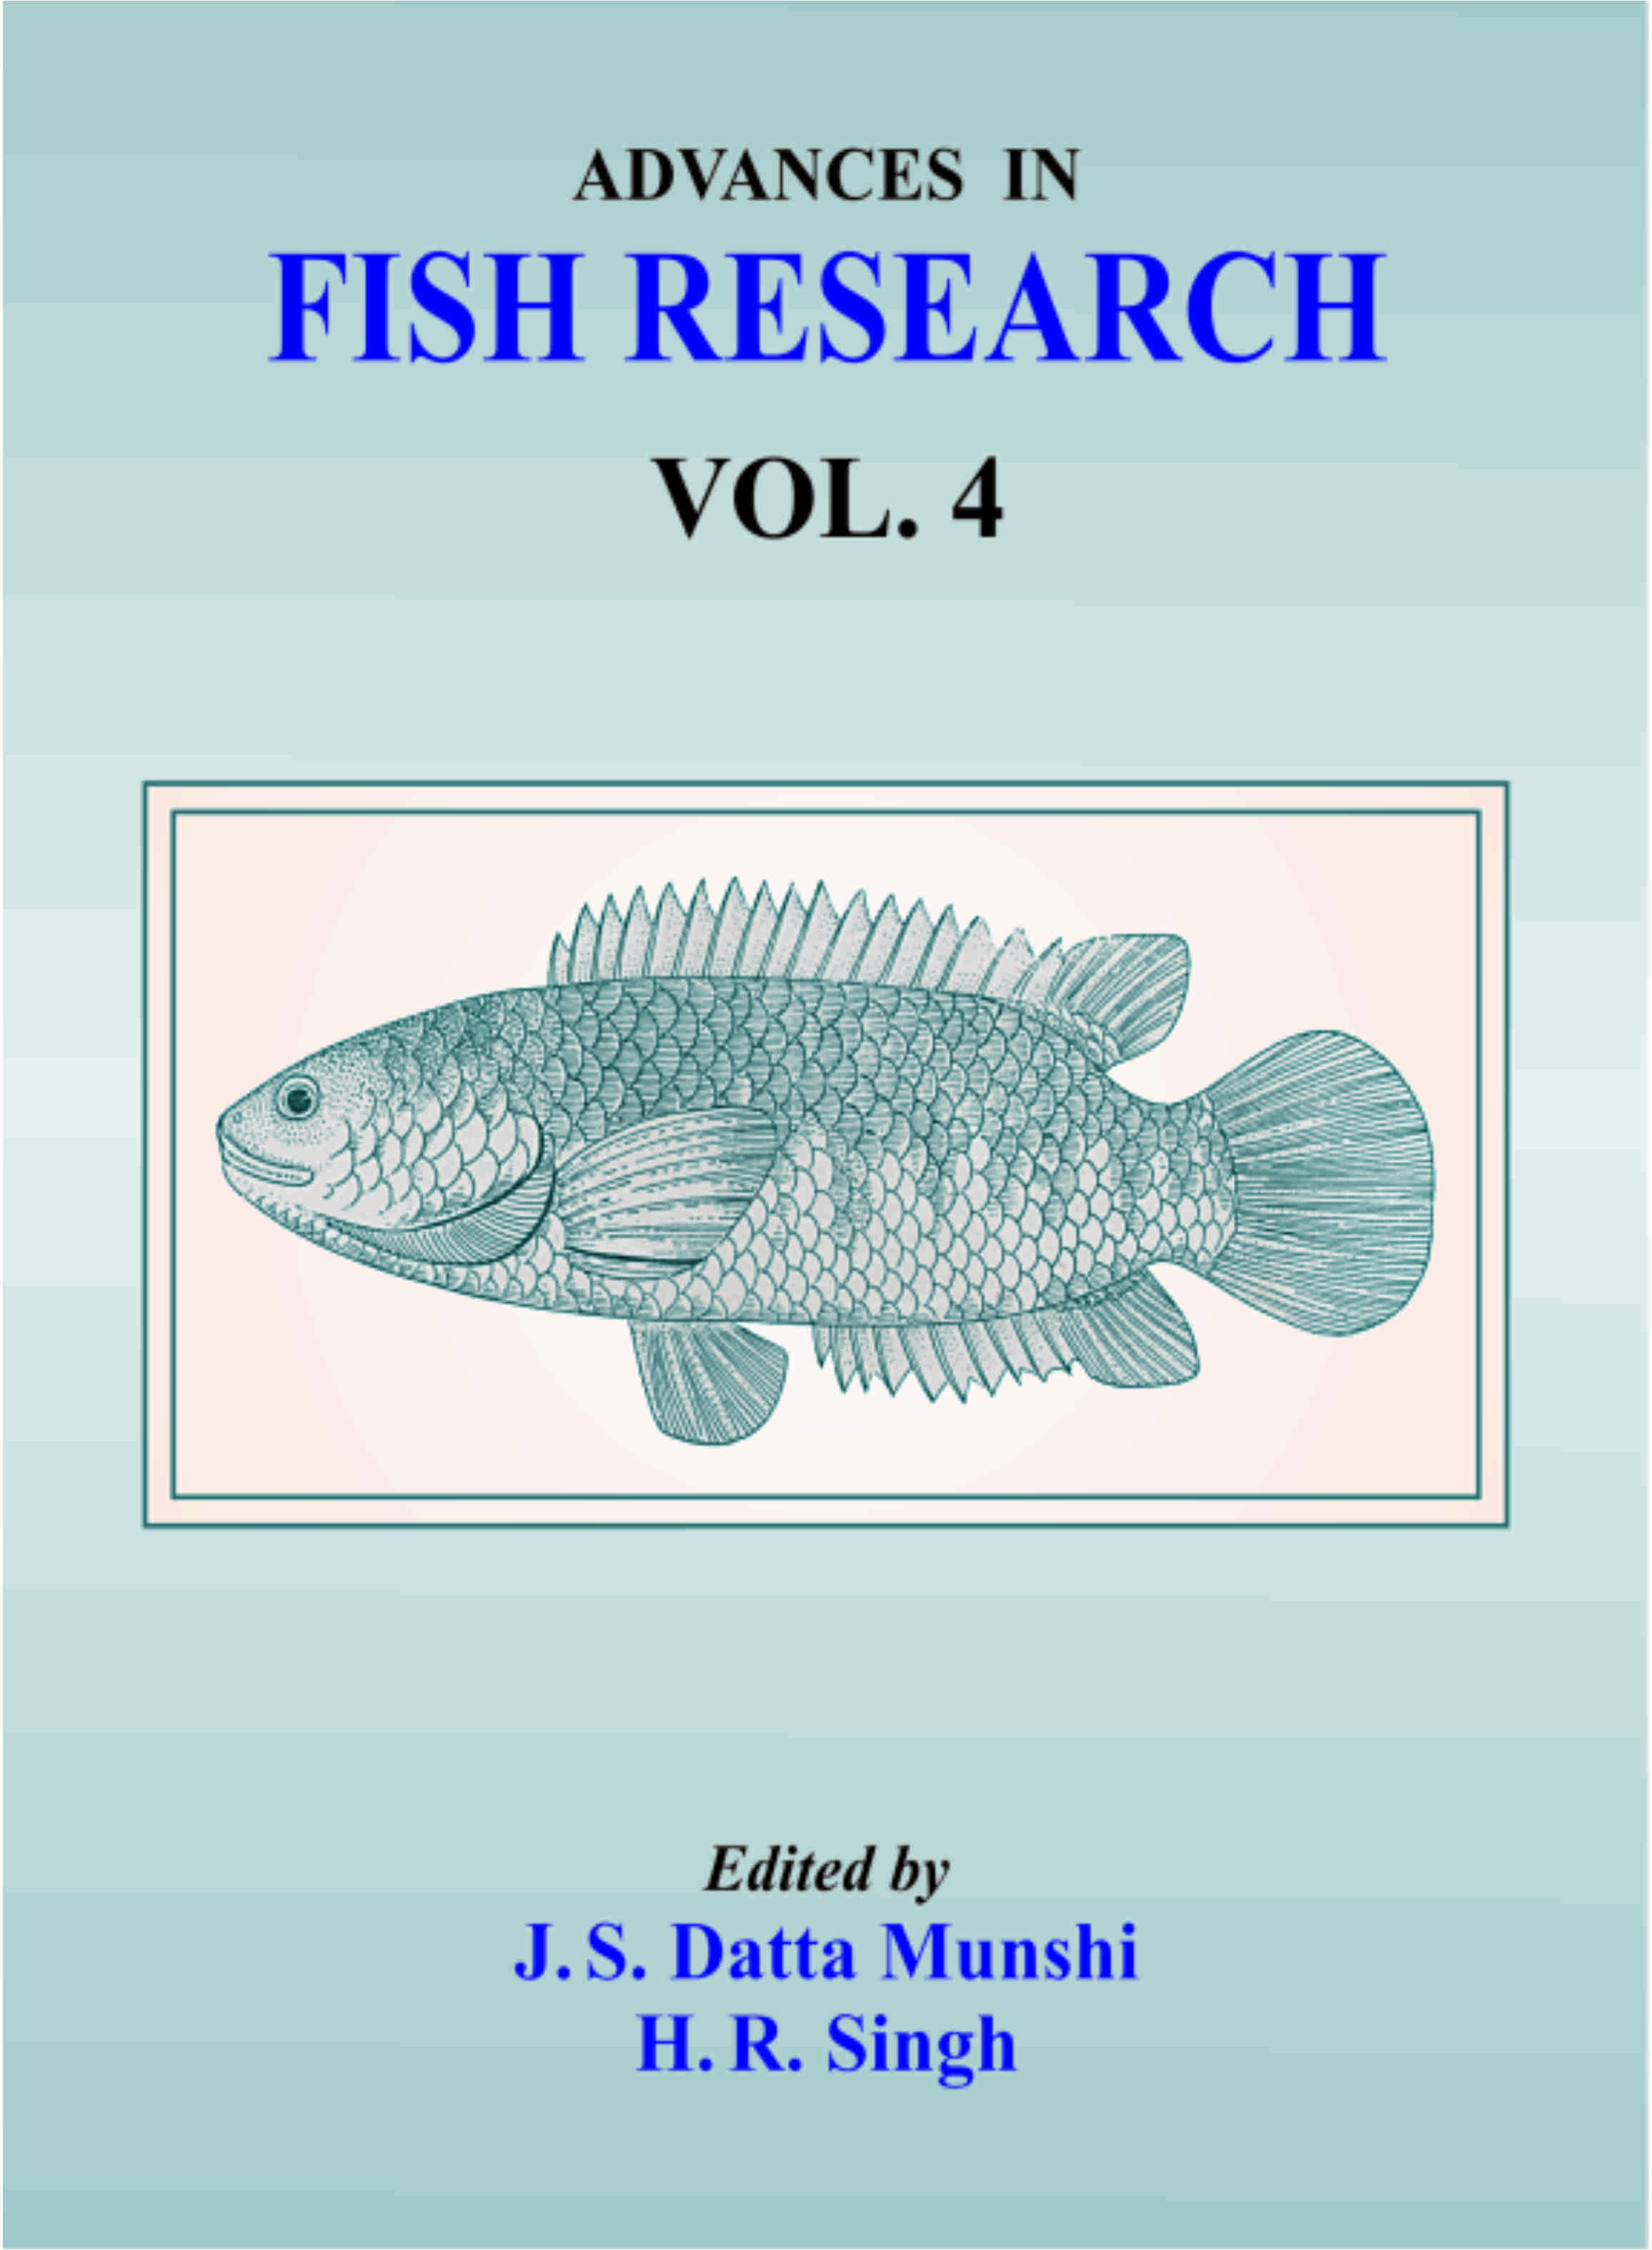 Advances in Fish Research Vol IV